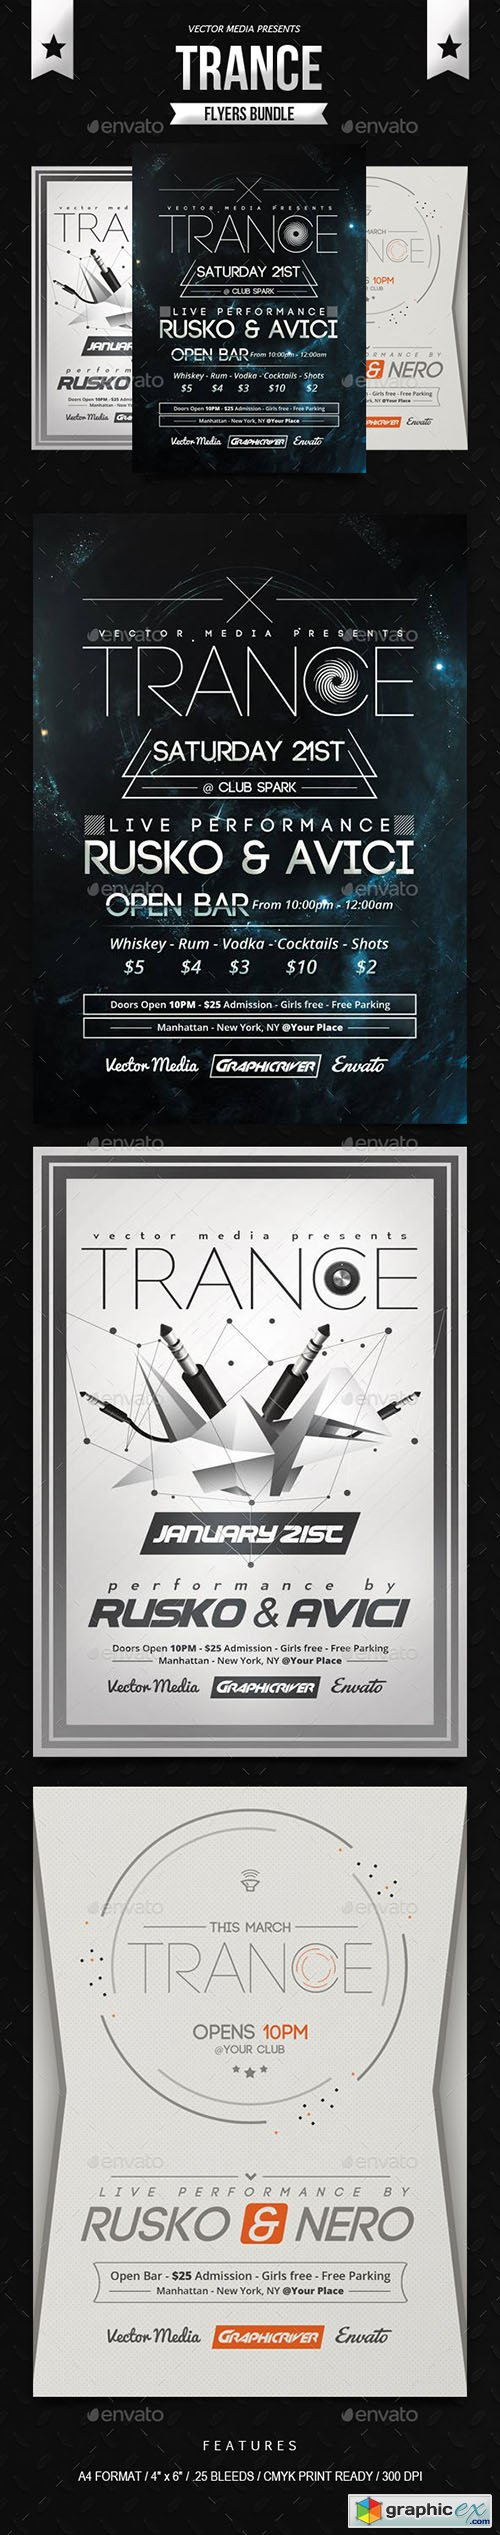 Trance Flyers Bundle